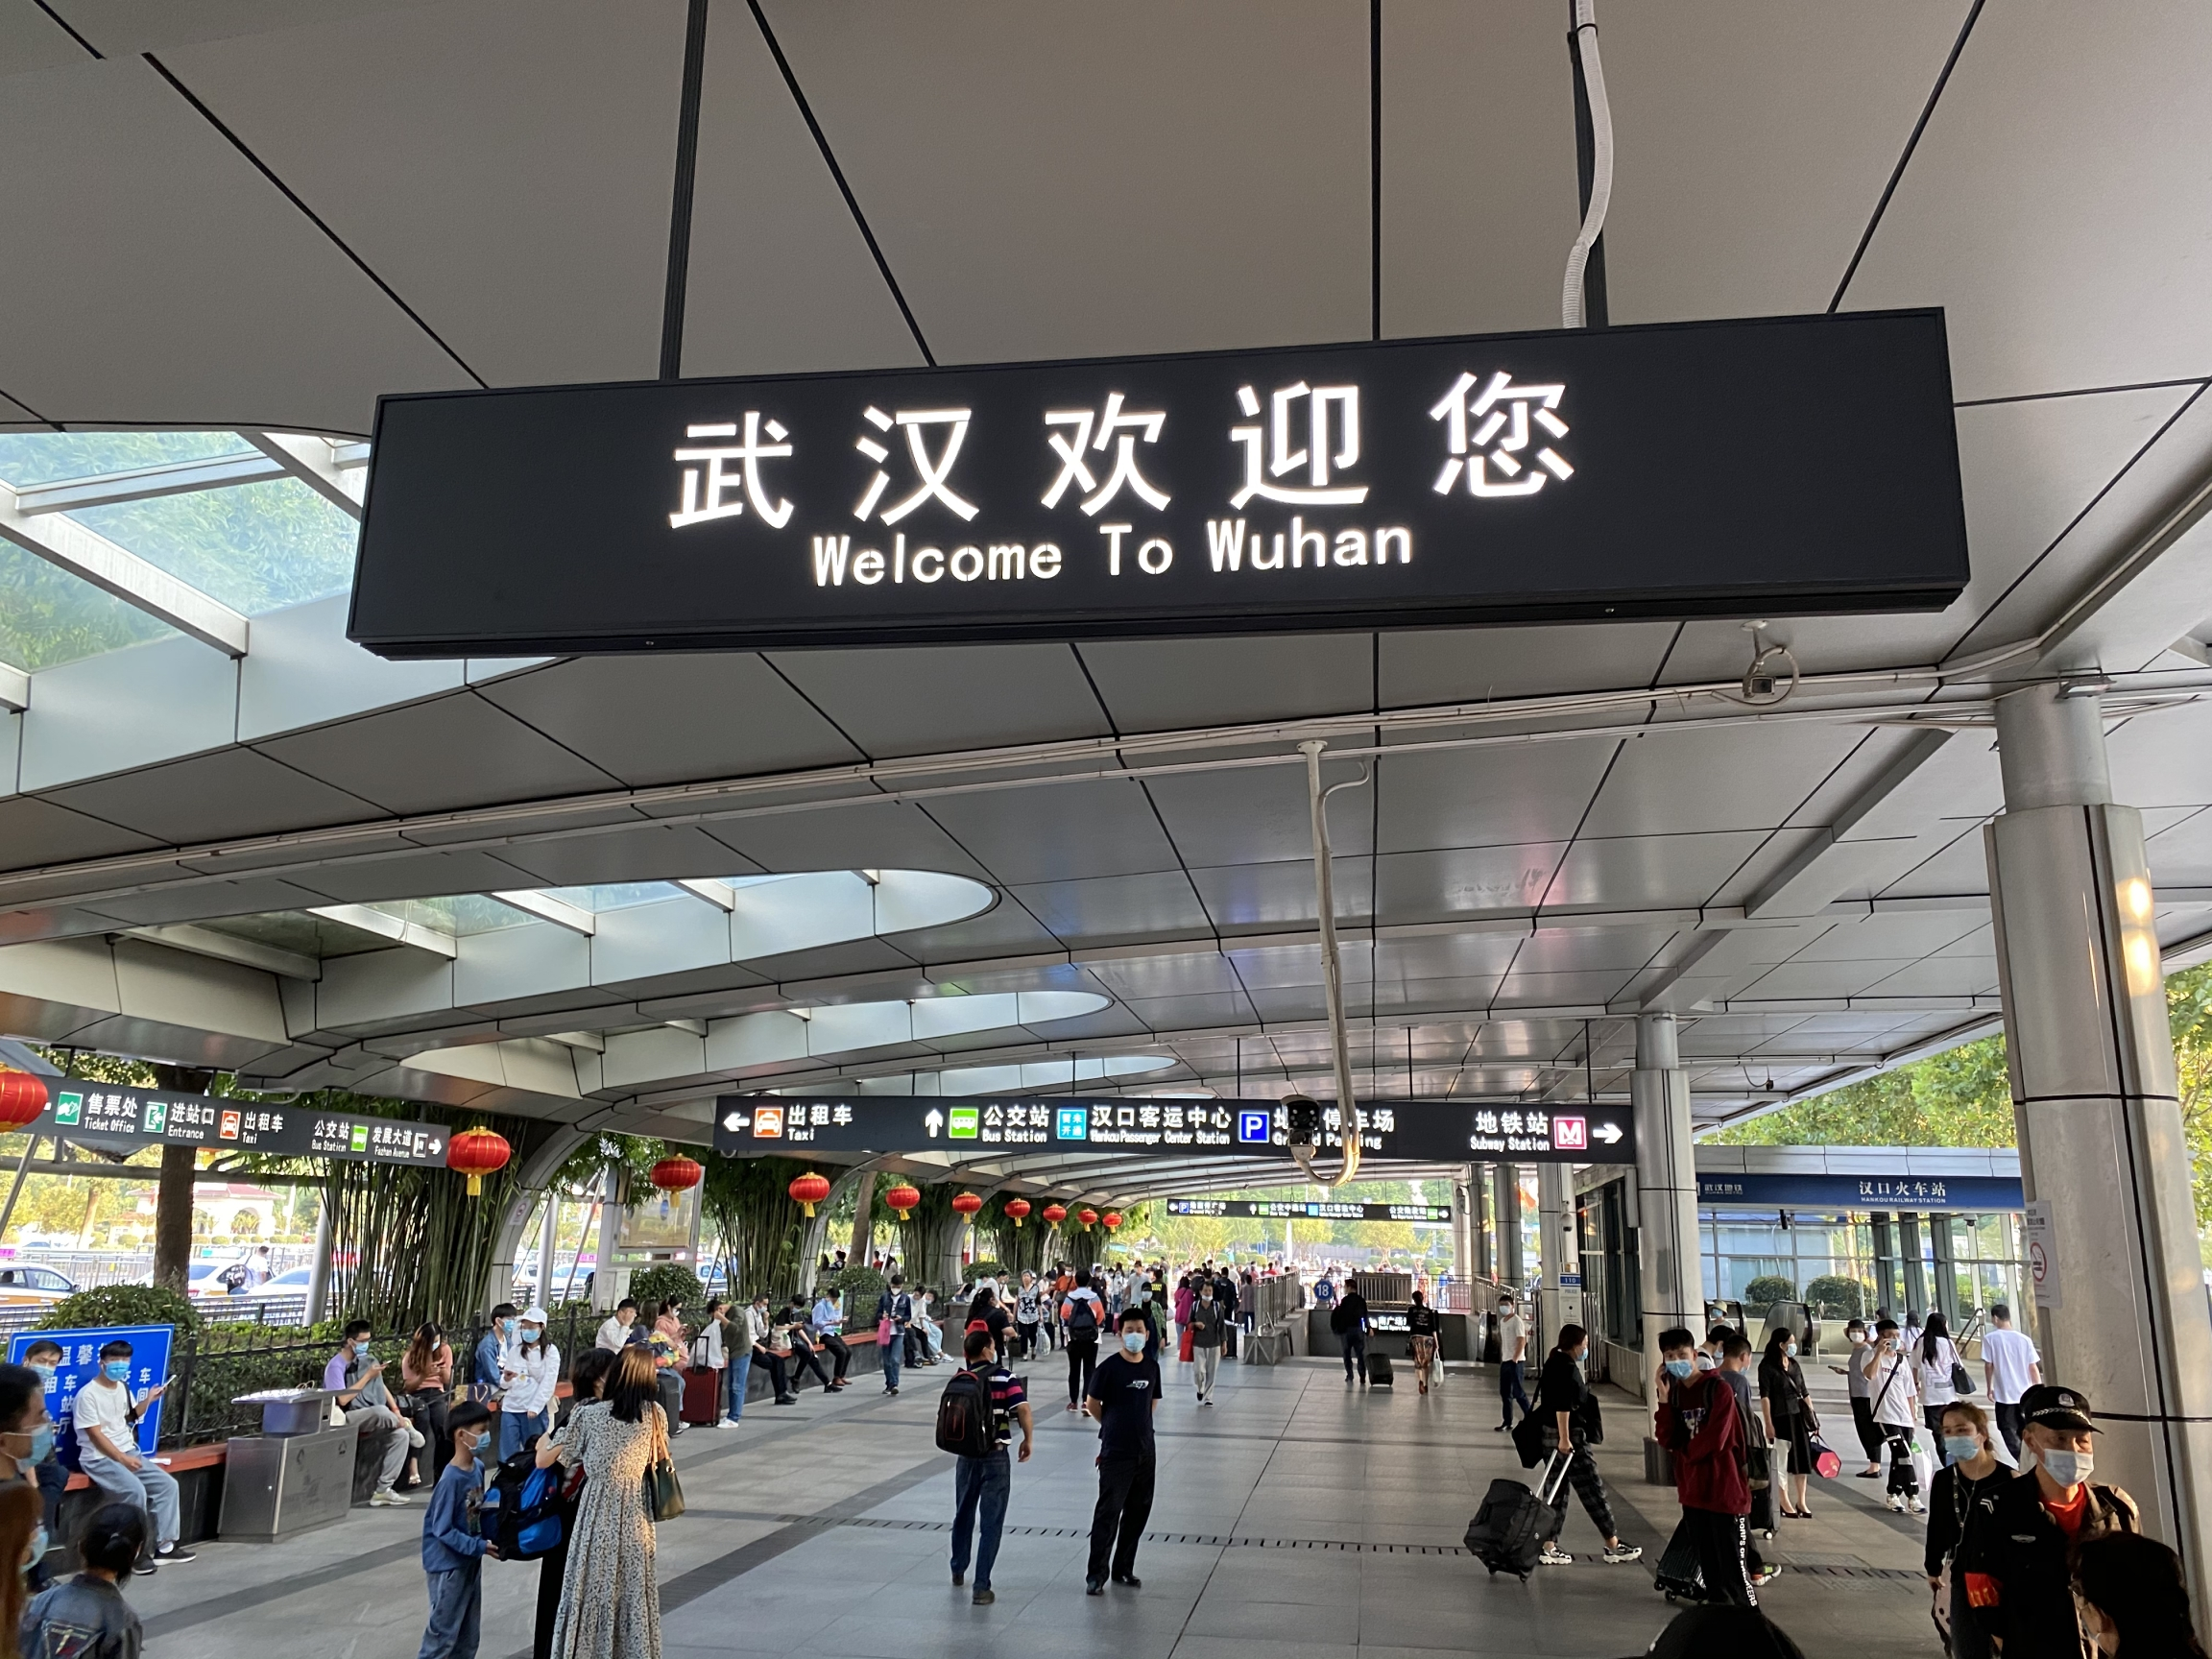 A busy train station in Taiwan.